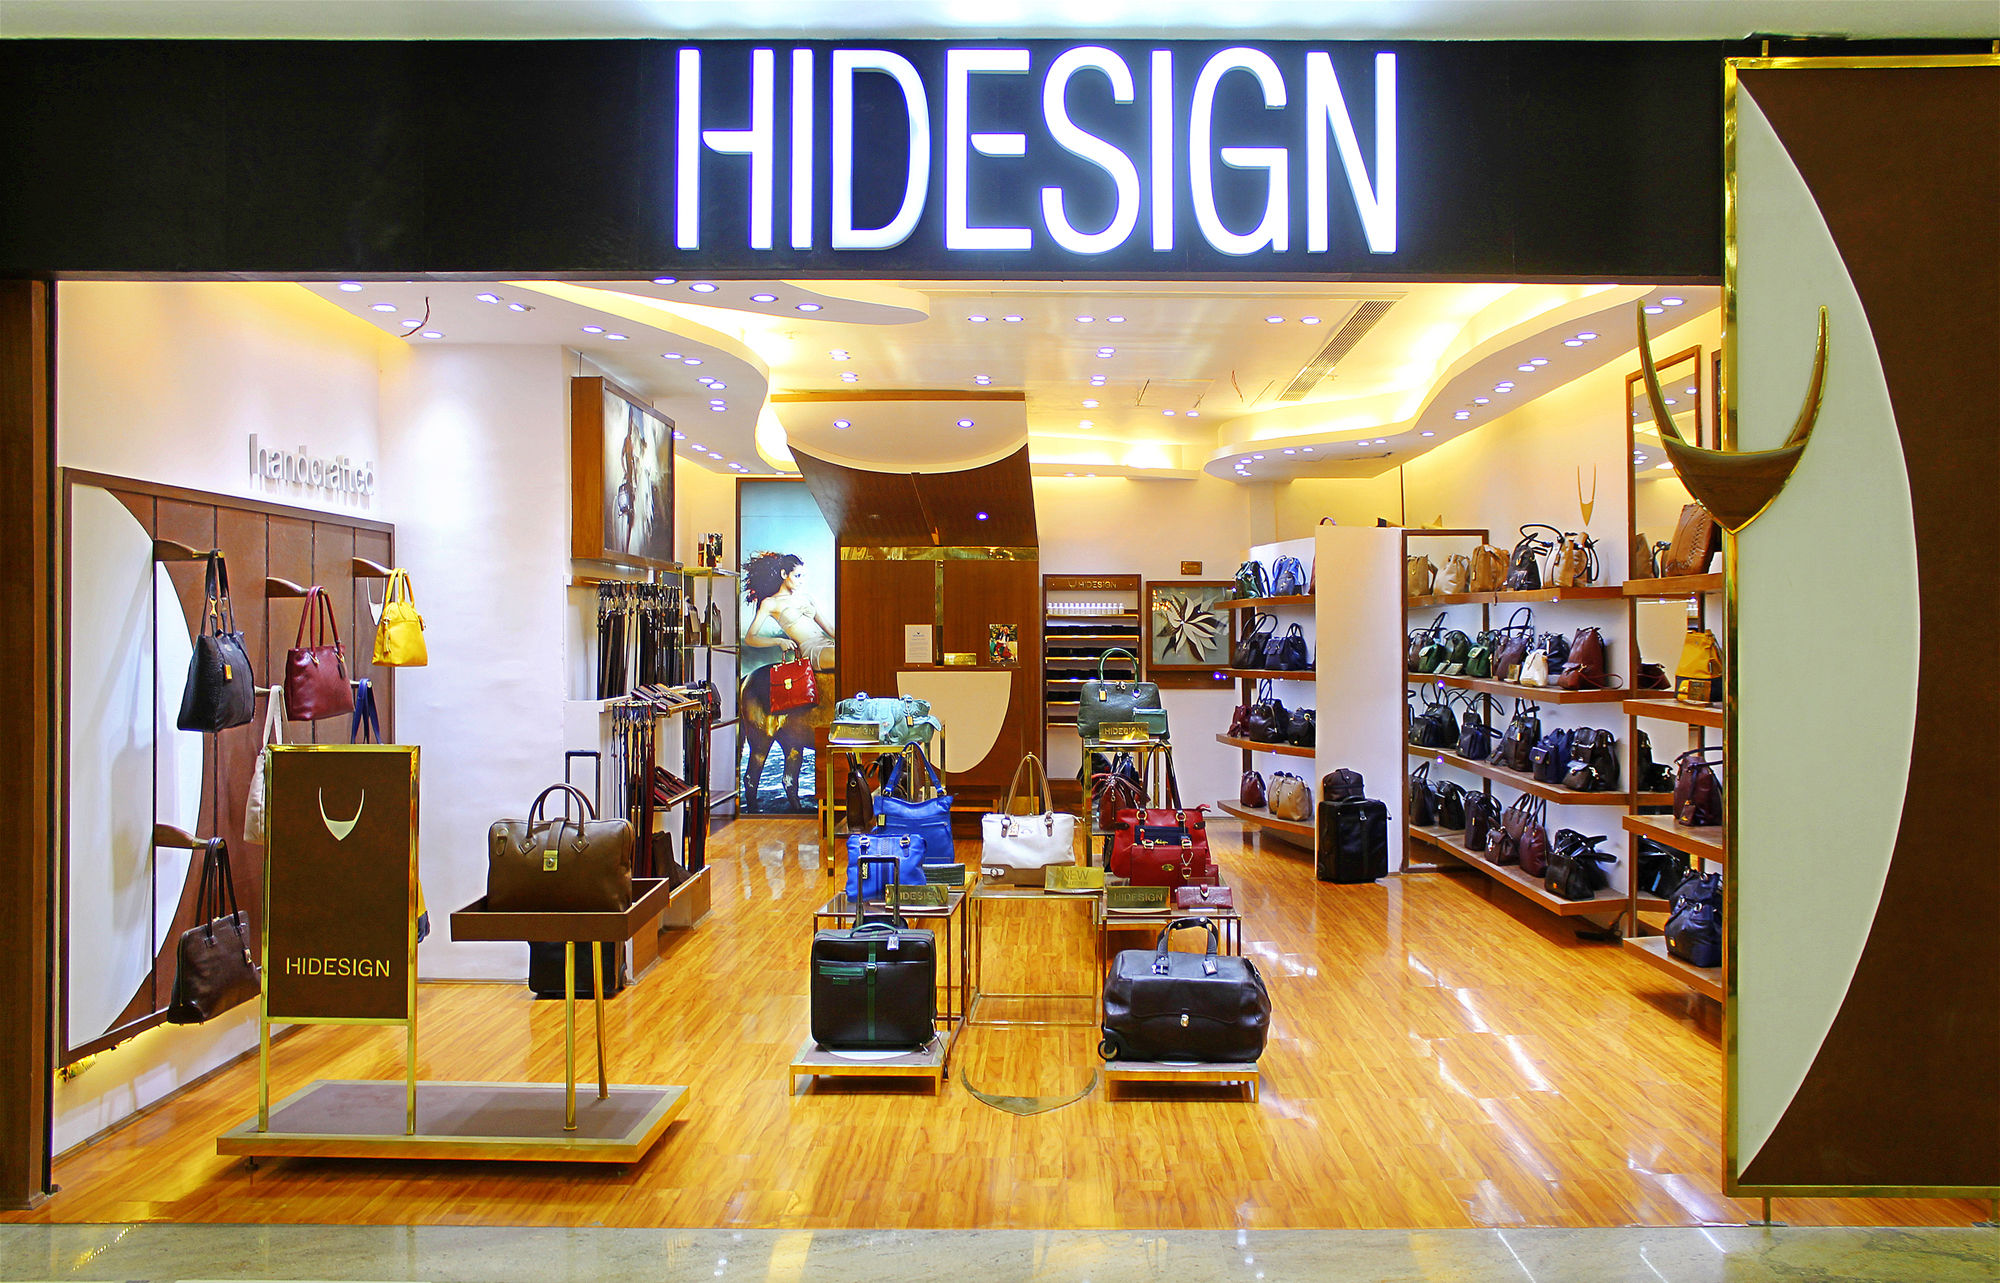 Hidesign to spread its leather across the world